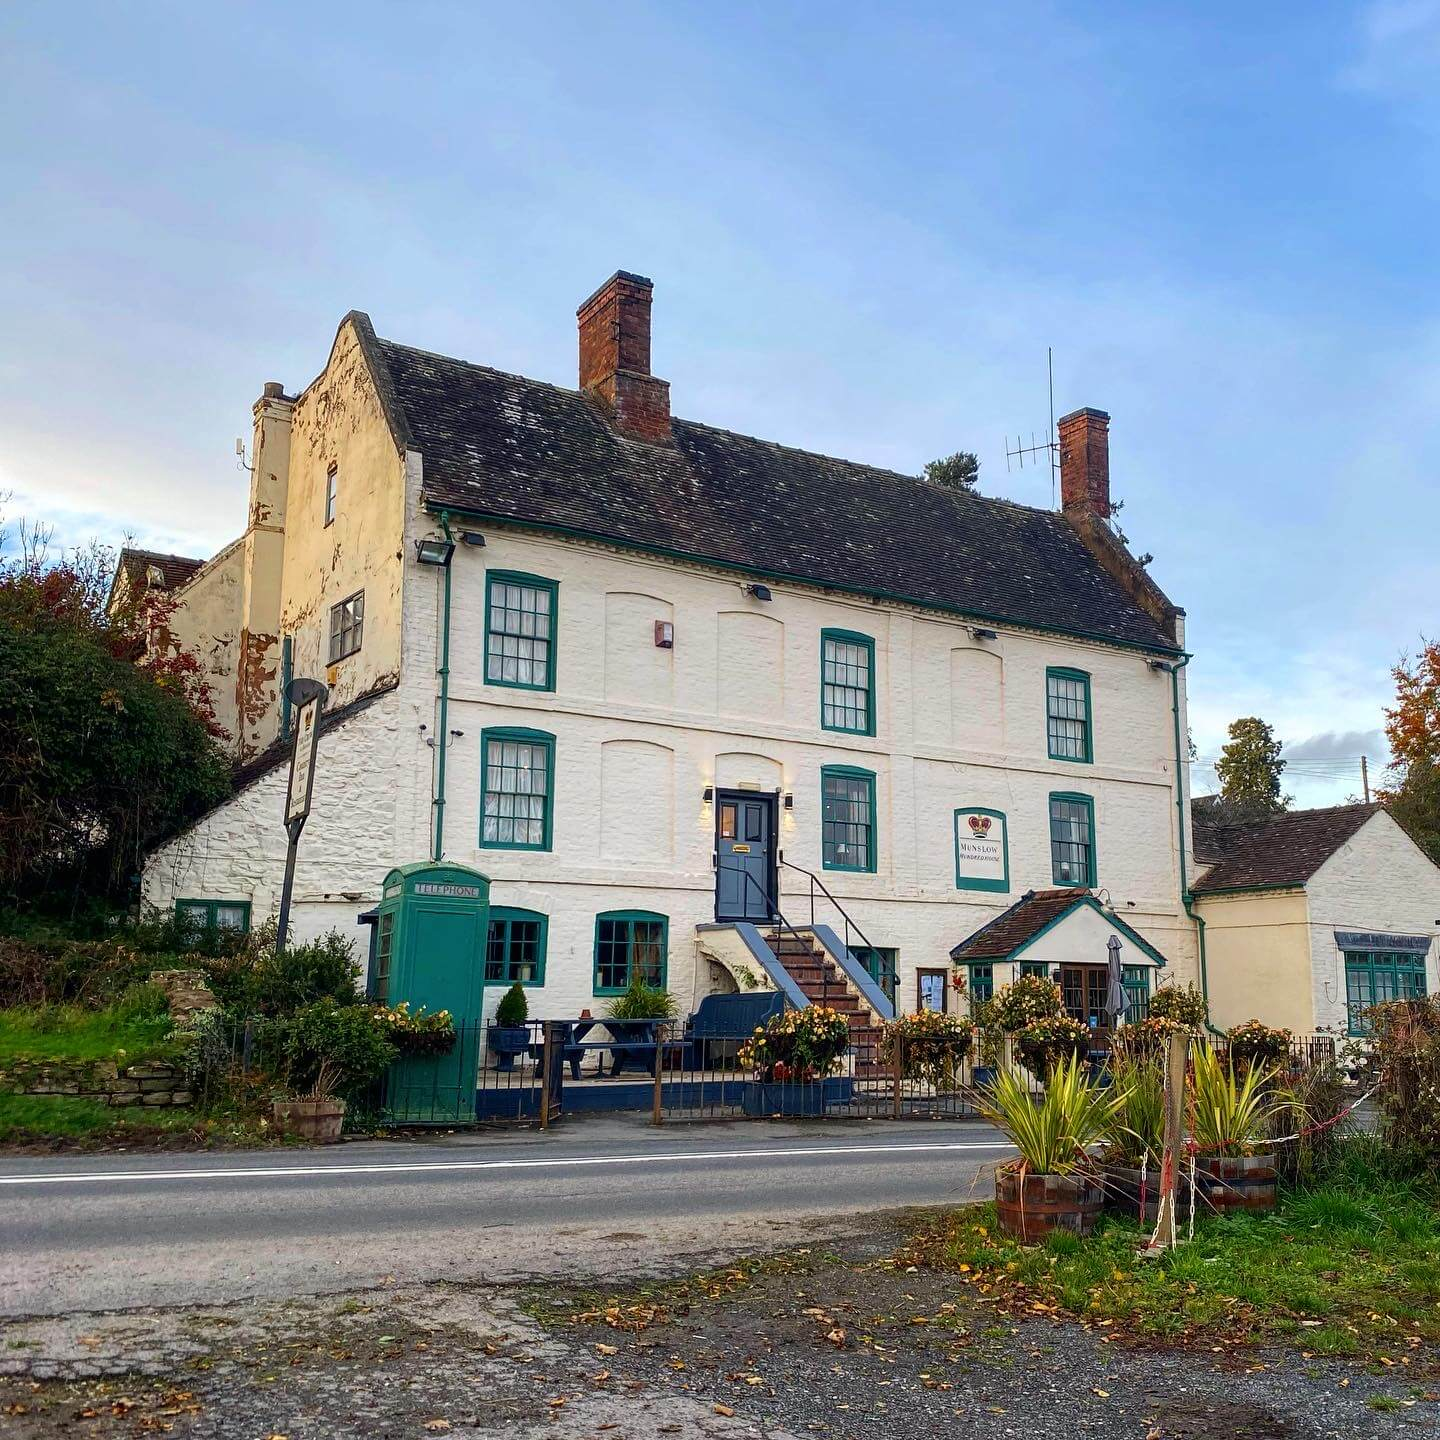 The Crown Country Inn, Shropshire